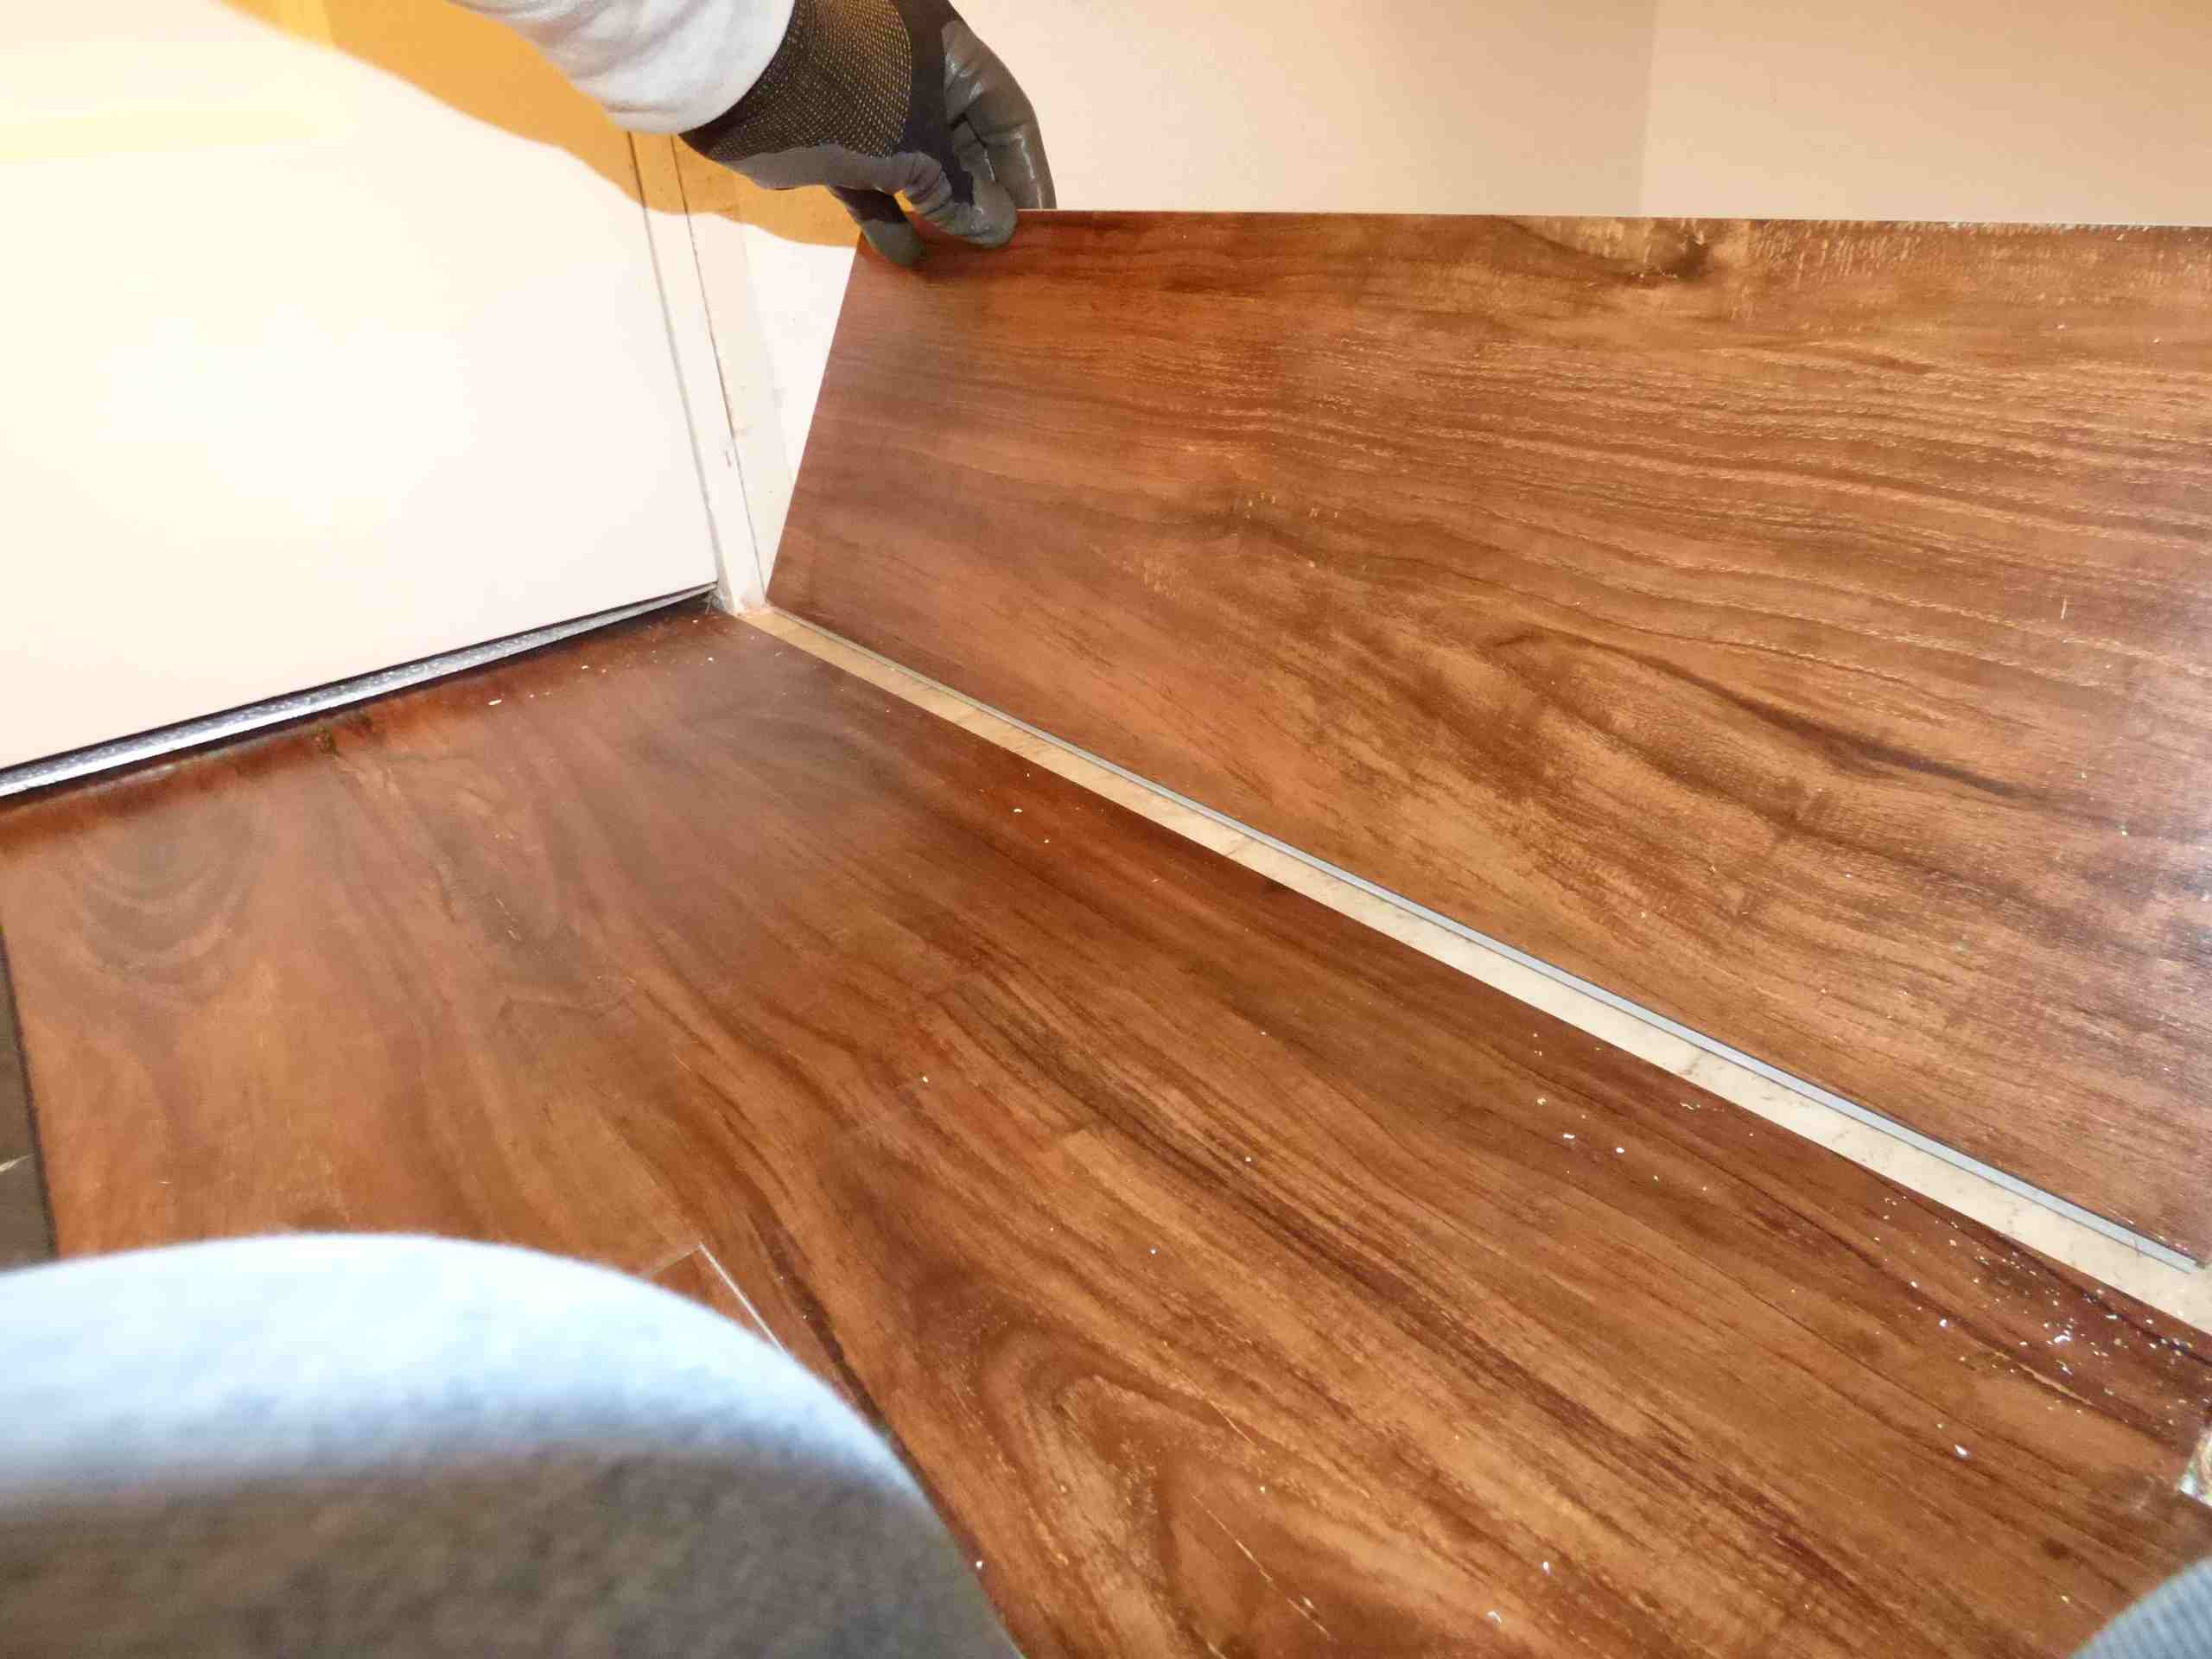 Hardwood Floor Installation Time Of Its Easy and Fast to Install Plank Vinyl Flooring Pertaining to Backwards Installing Plank Flooring 56a4a0535f9b58b7d0d7e38e Jpg